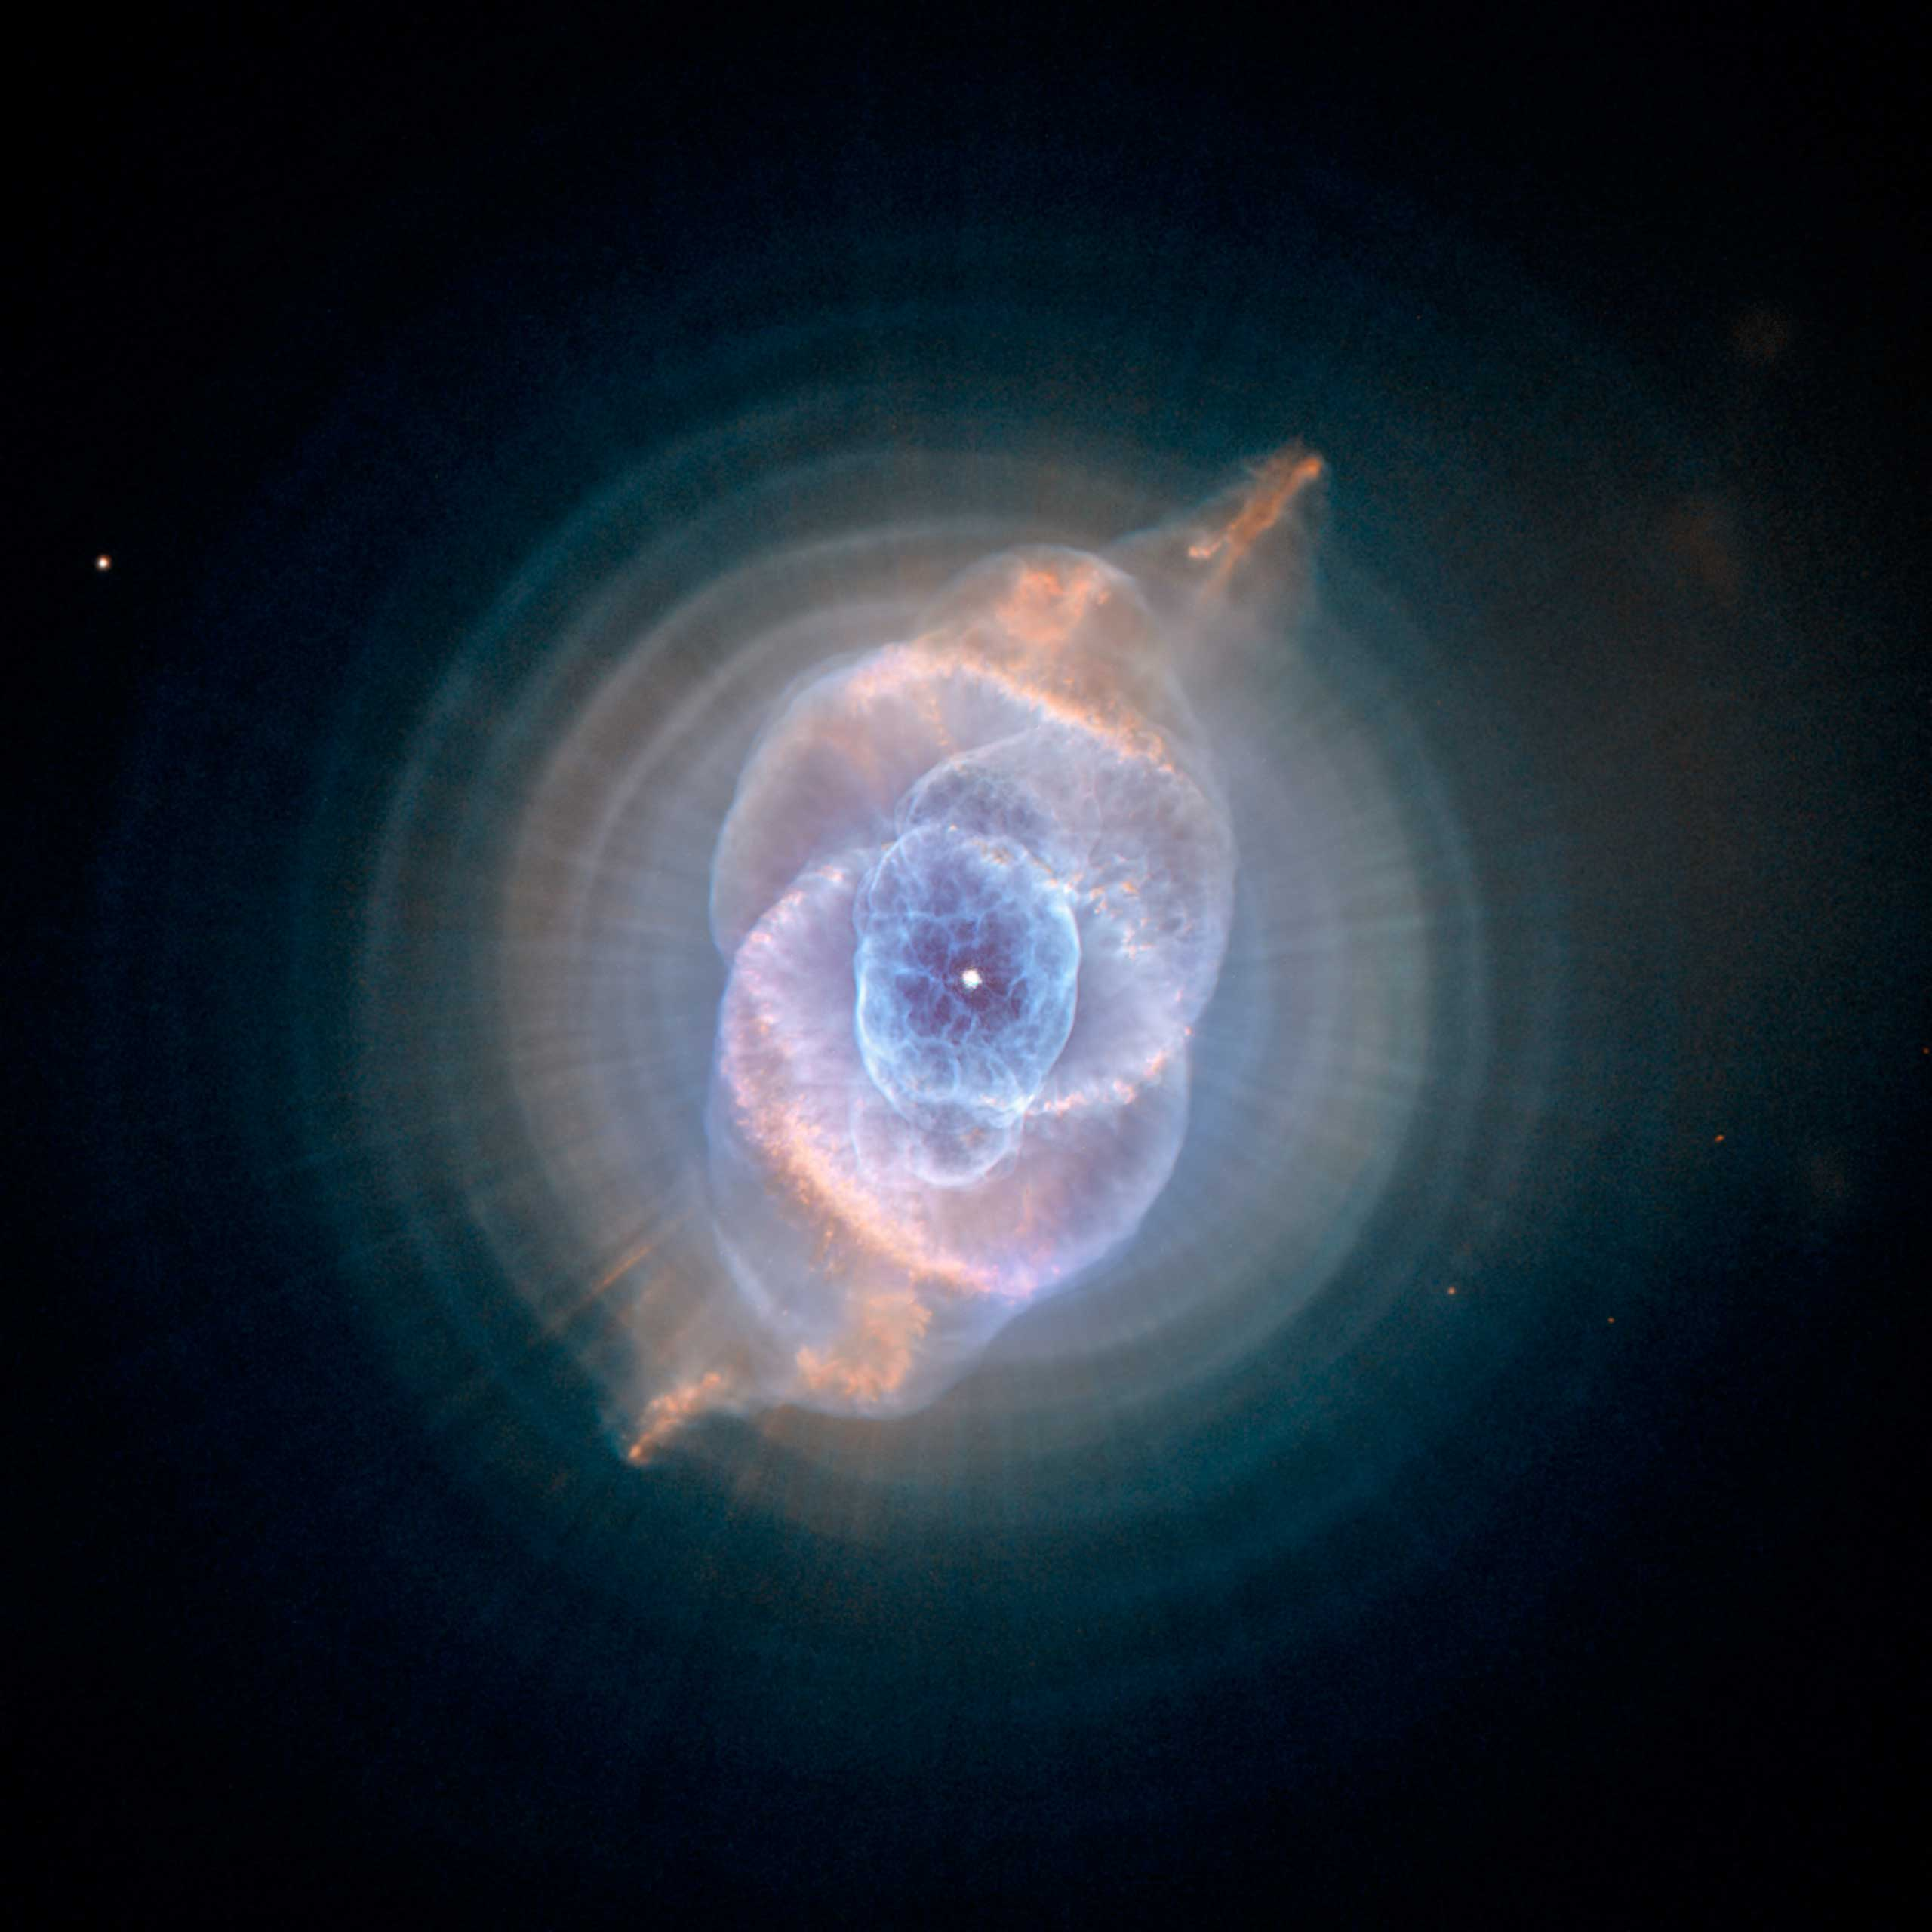 Cat's Eye Nebula:                                                              One of the first planetary nebulae discovered, the Cat's Eye Nebula also has one of the most complex forms known to this kind of nebula. Eleven rings, or shells, of gas make up the Cat's Eye.                                                              Image released on Sept. 9, 2004